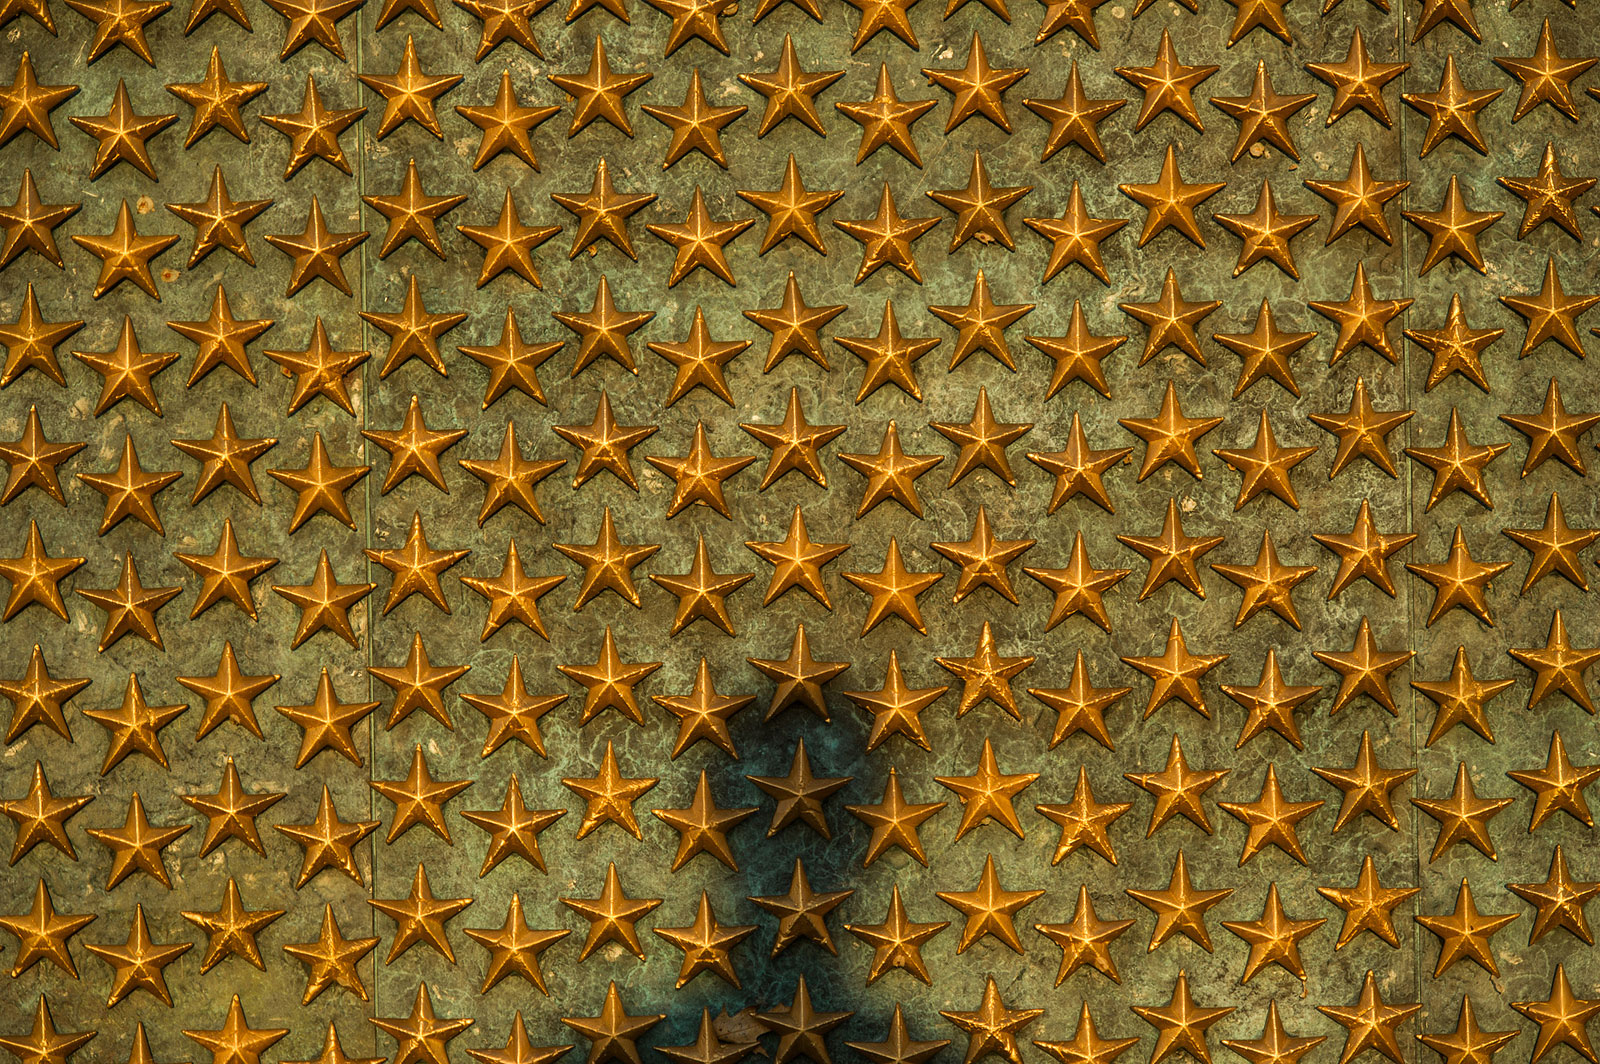 A shadow appears on the wall of stars at the National World War II Memorial in Washington D.C. The World War II Memorial honors the 16 million who served in the armed forces of the U.S., the more than 400,000 who died, and all who supported the war effort from home.